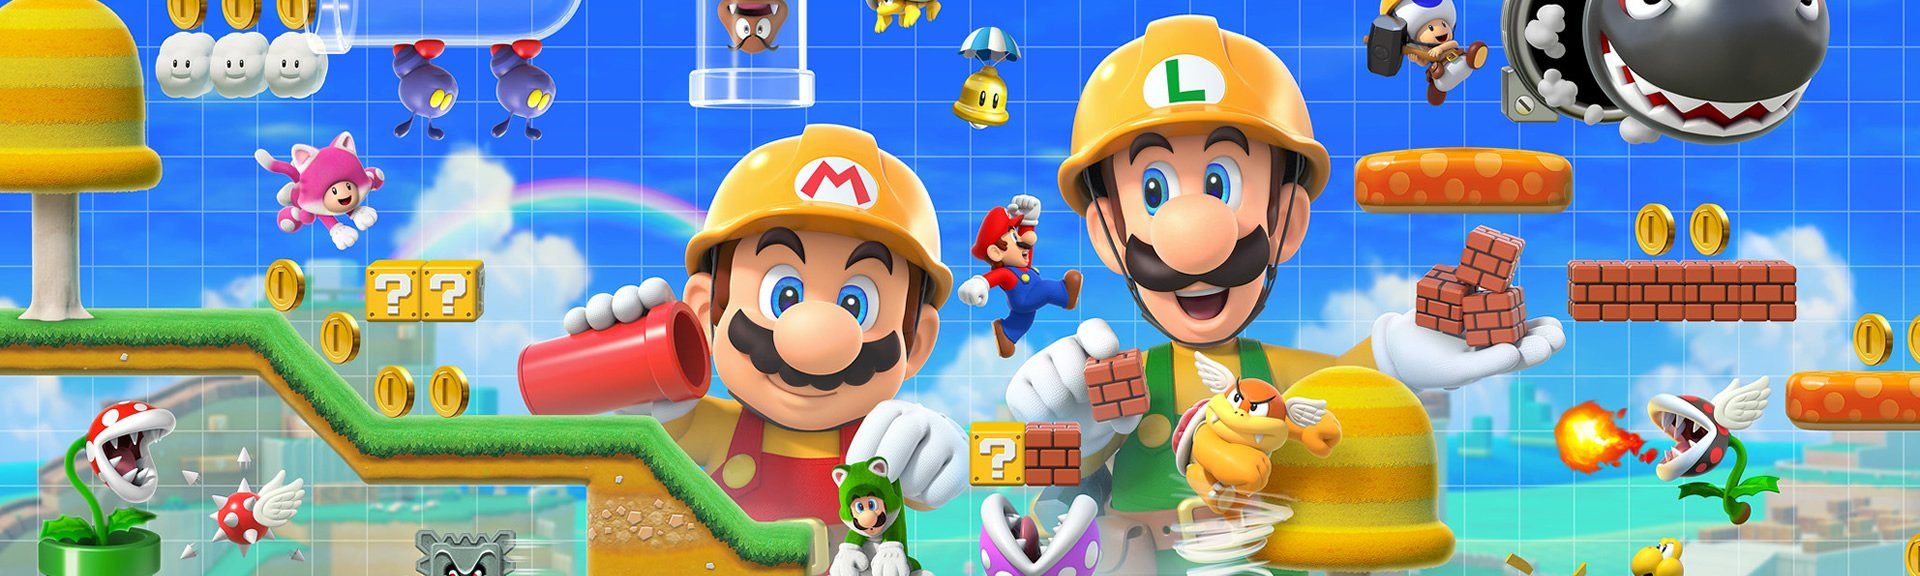 Super Mario Maker 2 guides wiki faqs extras how to